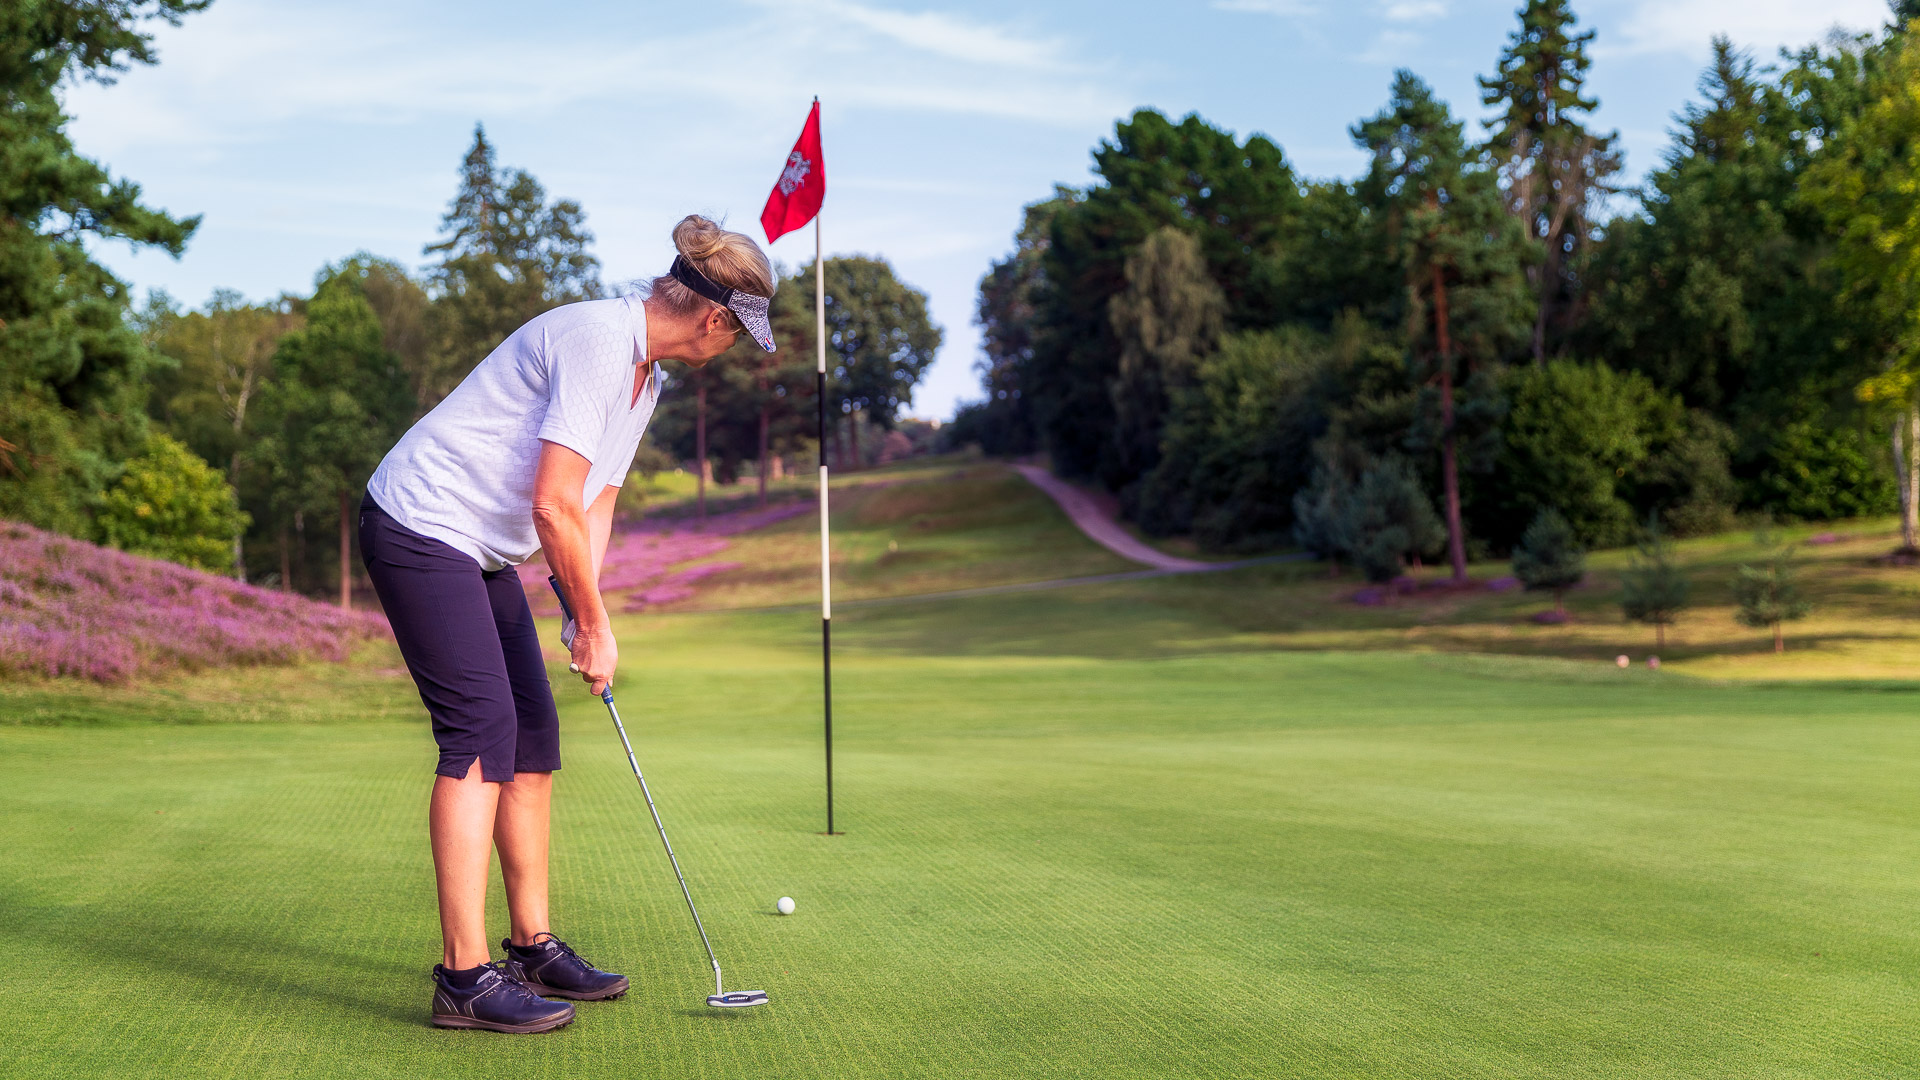 Green-Players-St-Georges-Hill-Golf-Club-1154